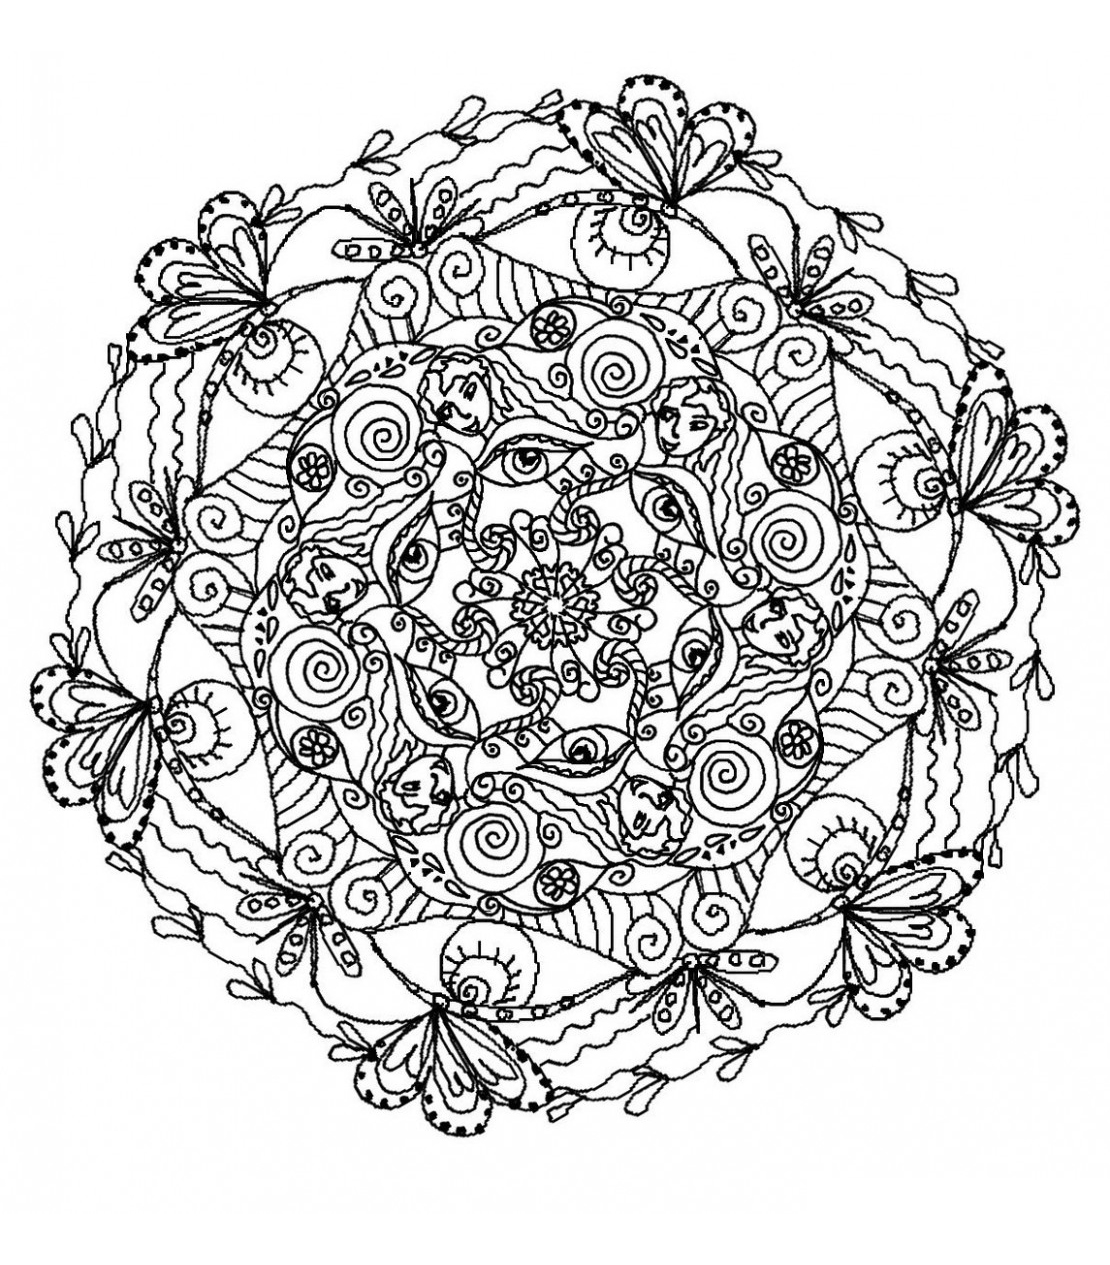 Plants and natural patterns for this refreshing Mandala for adult. Colors in green tones preferred, of course !